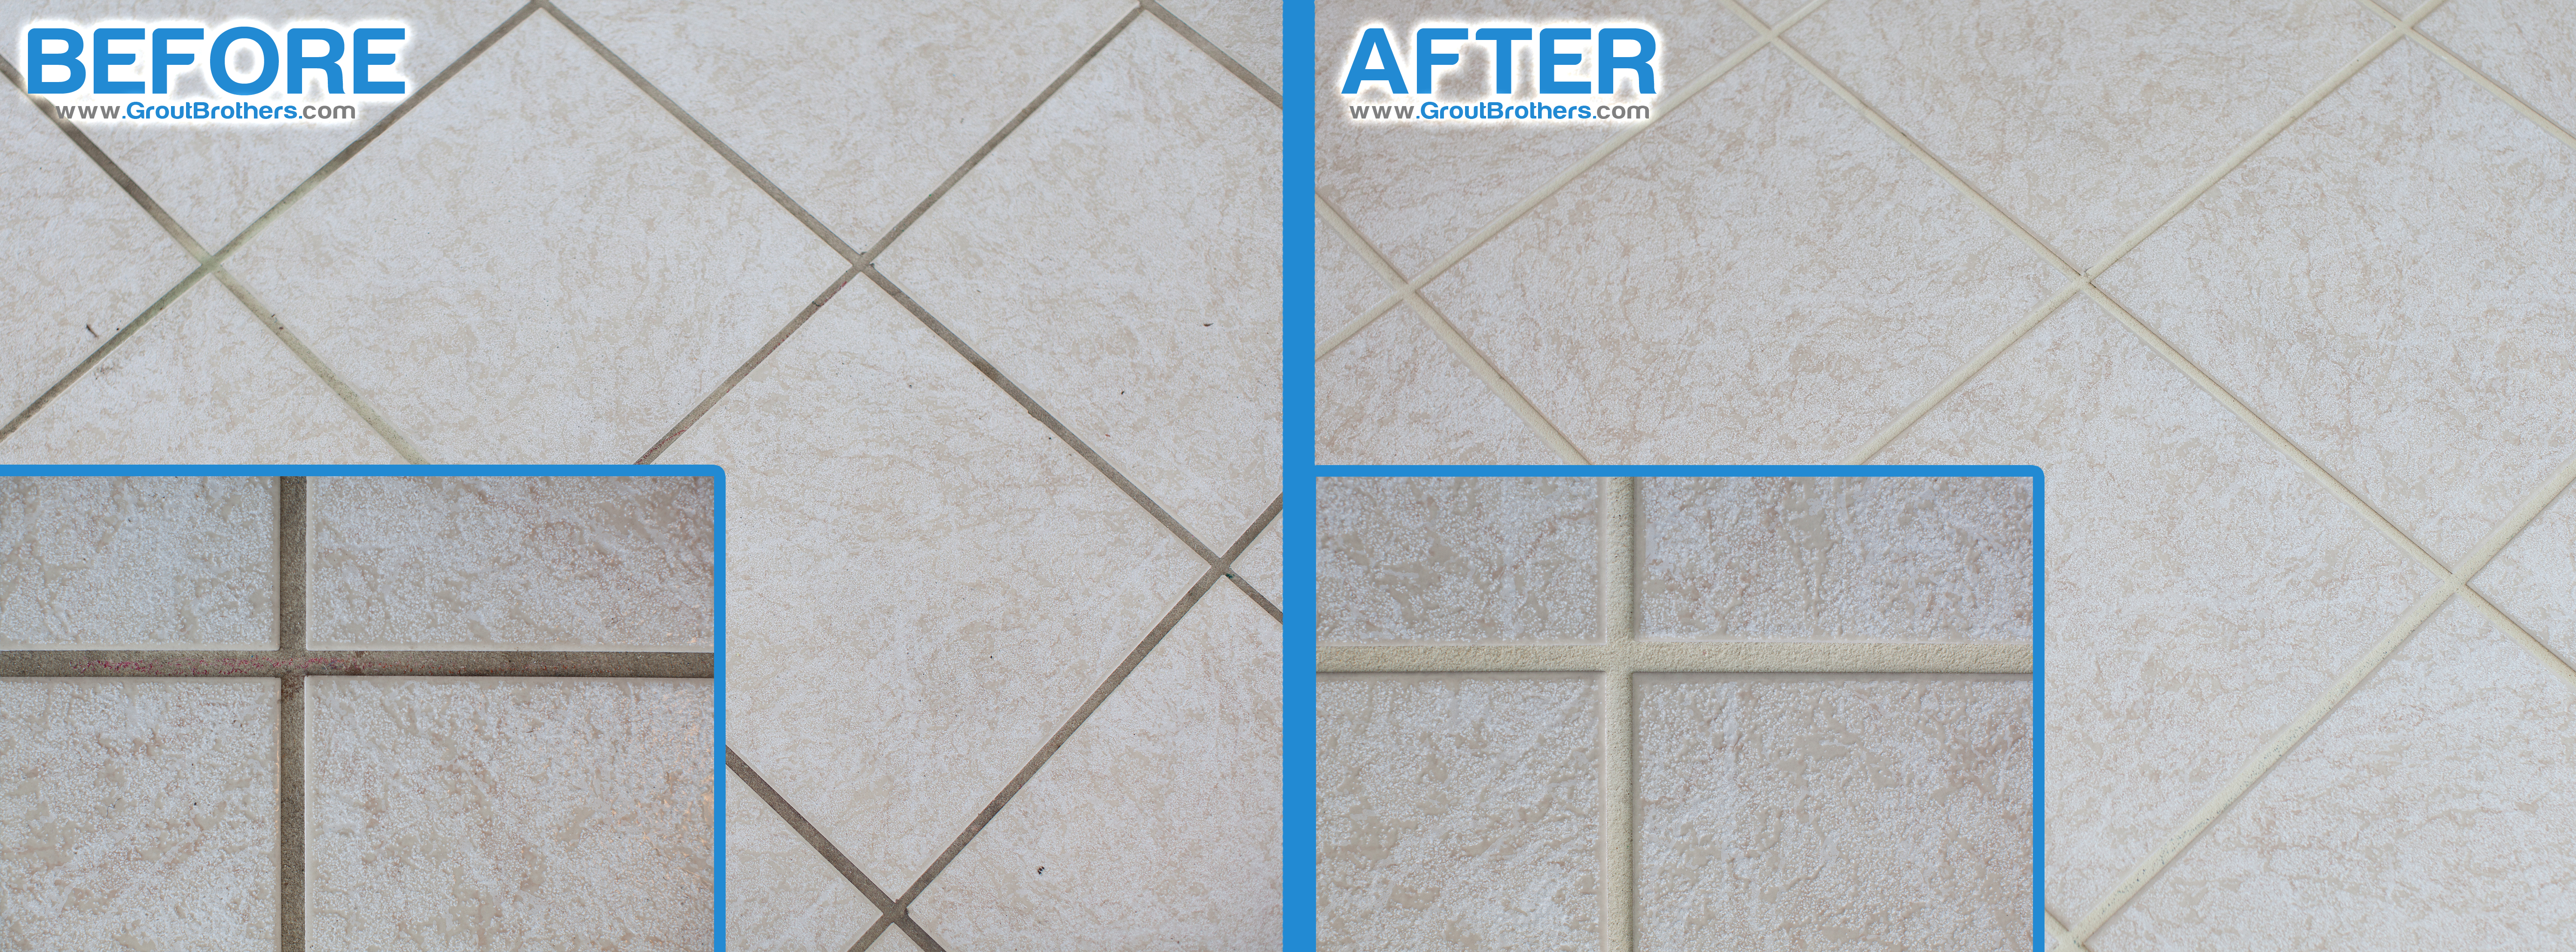 Services grout brothers tile grout cleaning restoration co tile grout cleaning venice dailygadgetfo Gallery